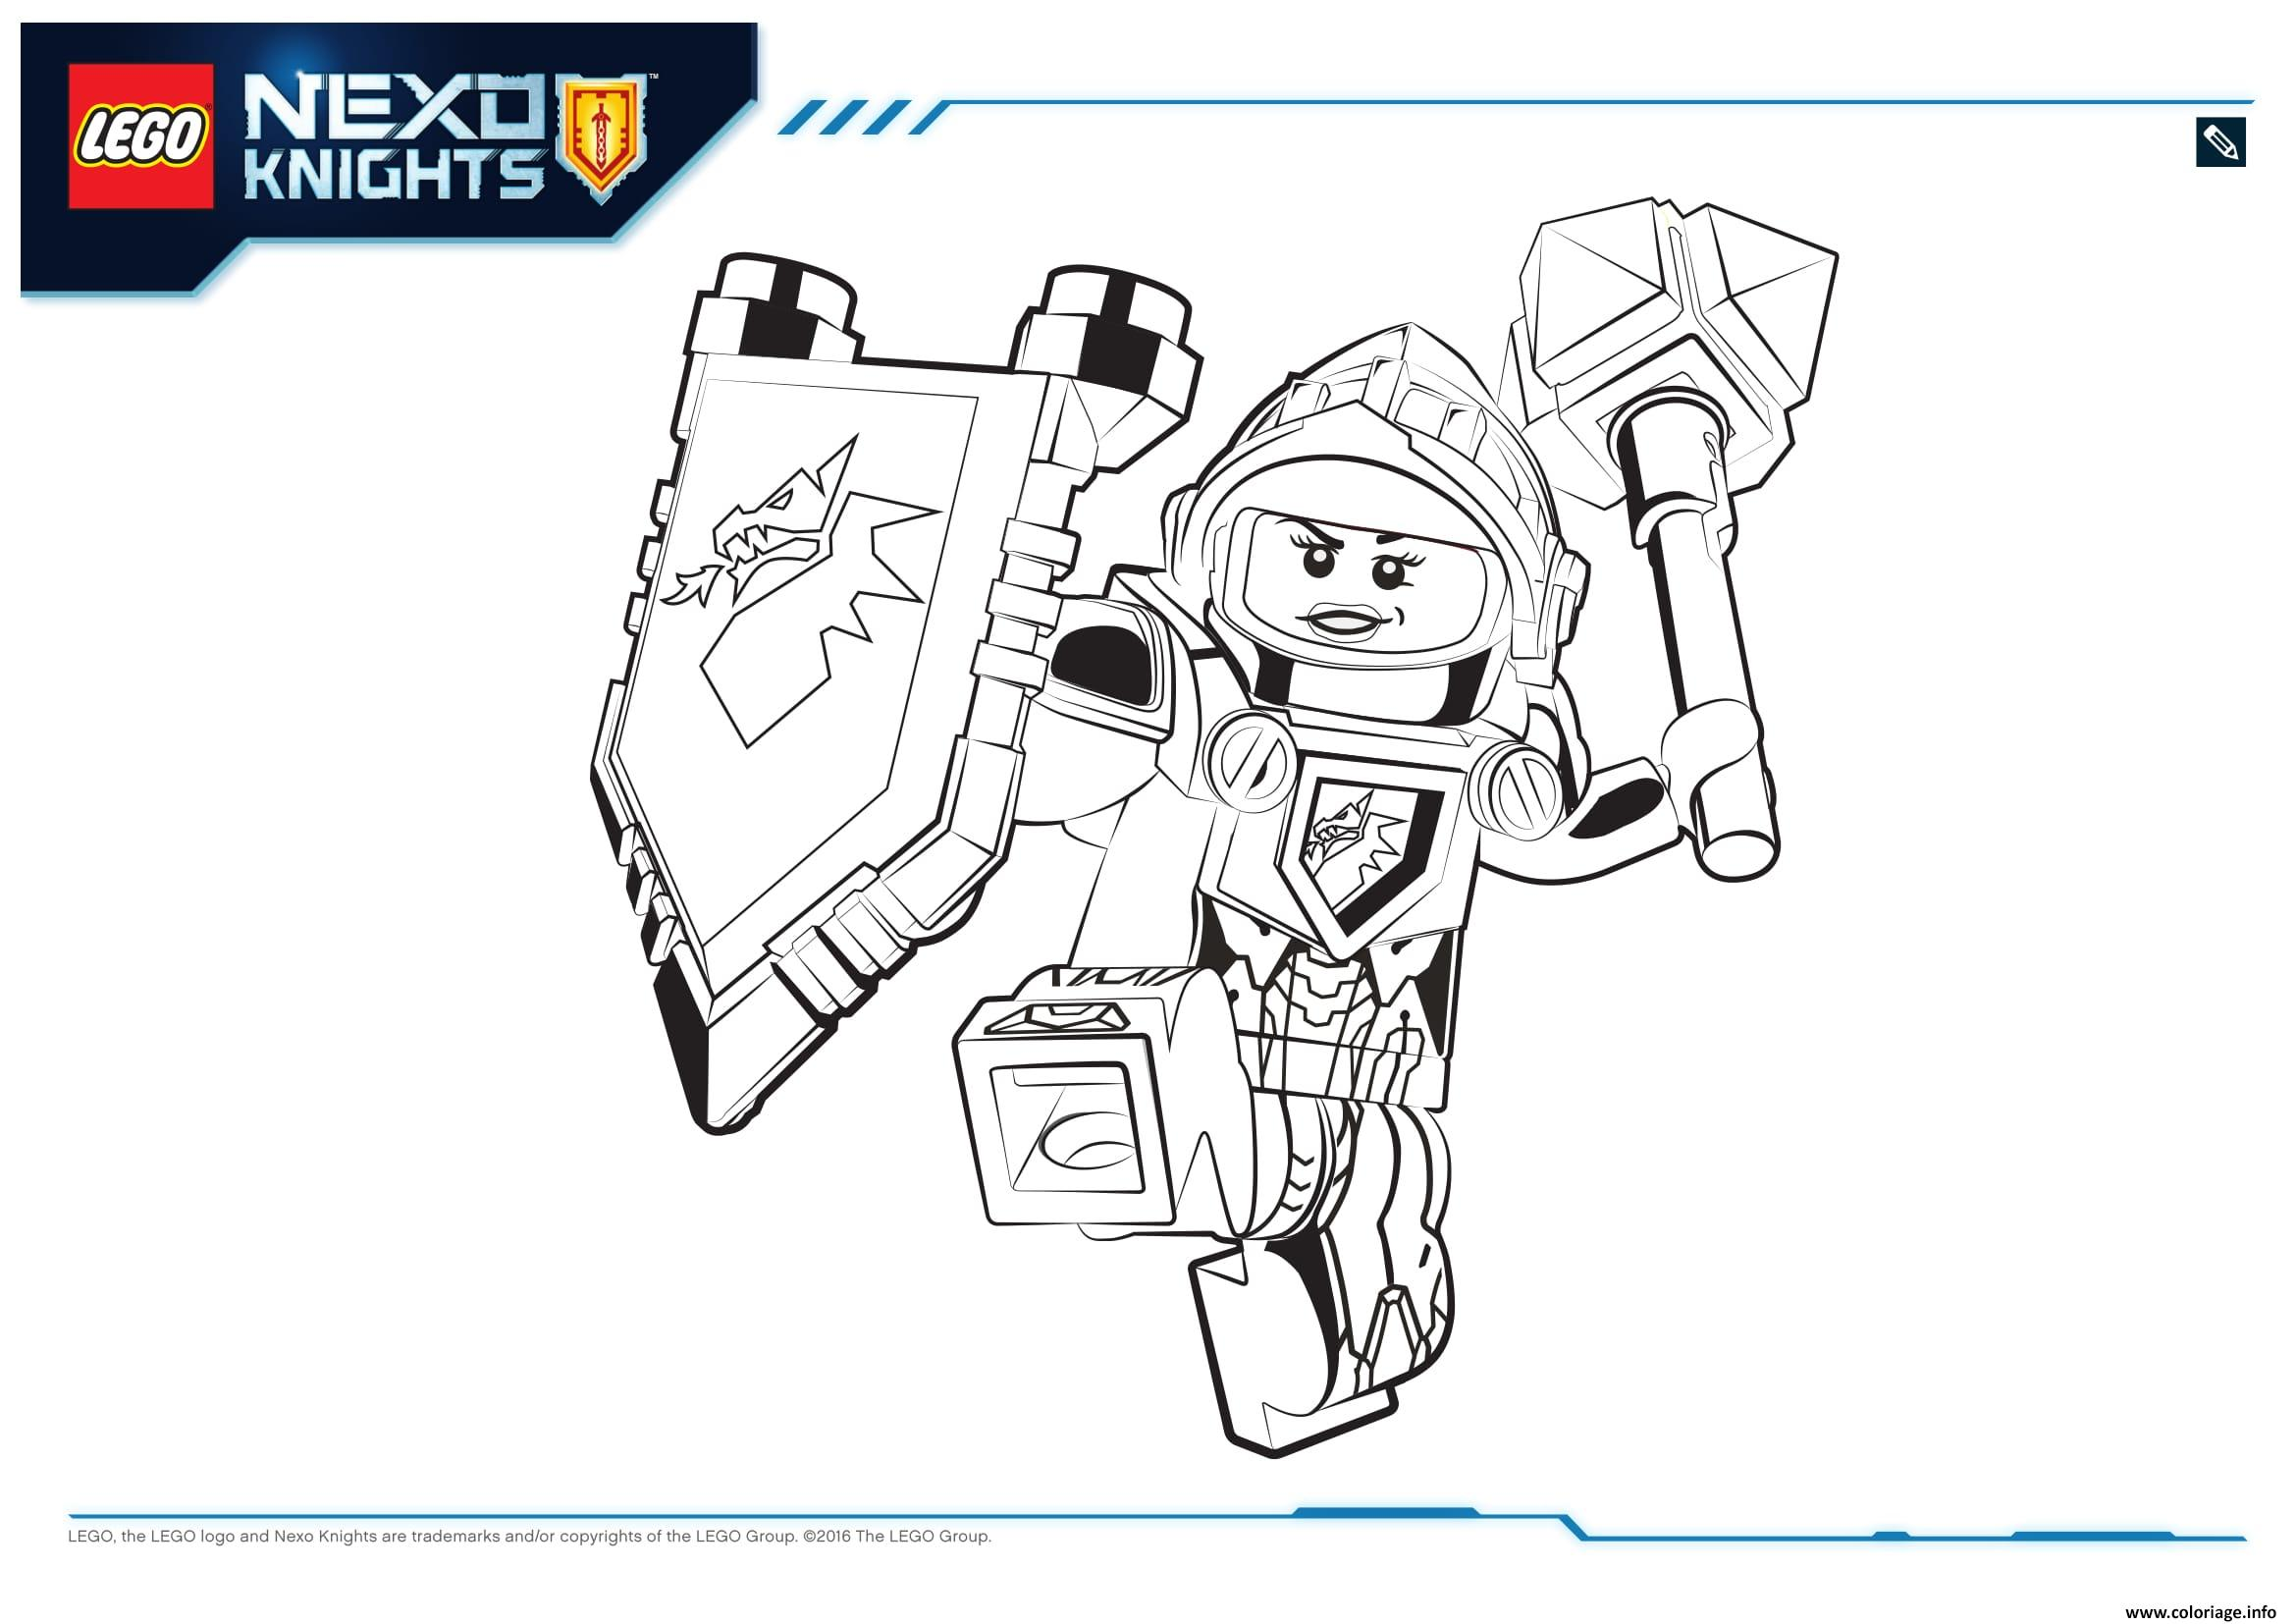 Excellent Coloriage Lego Nexo Knights à Imprimer 67 Pour Coloriage Pages with Coloriage Lego Nexo Knights à Imprimer